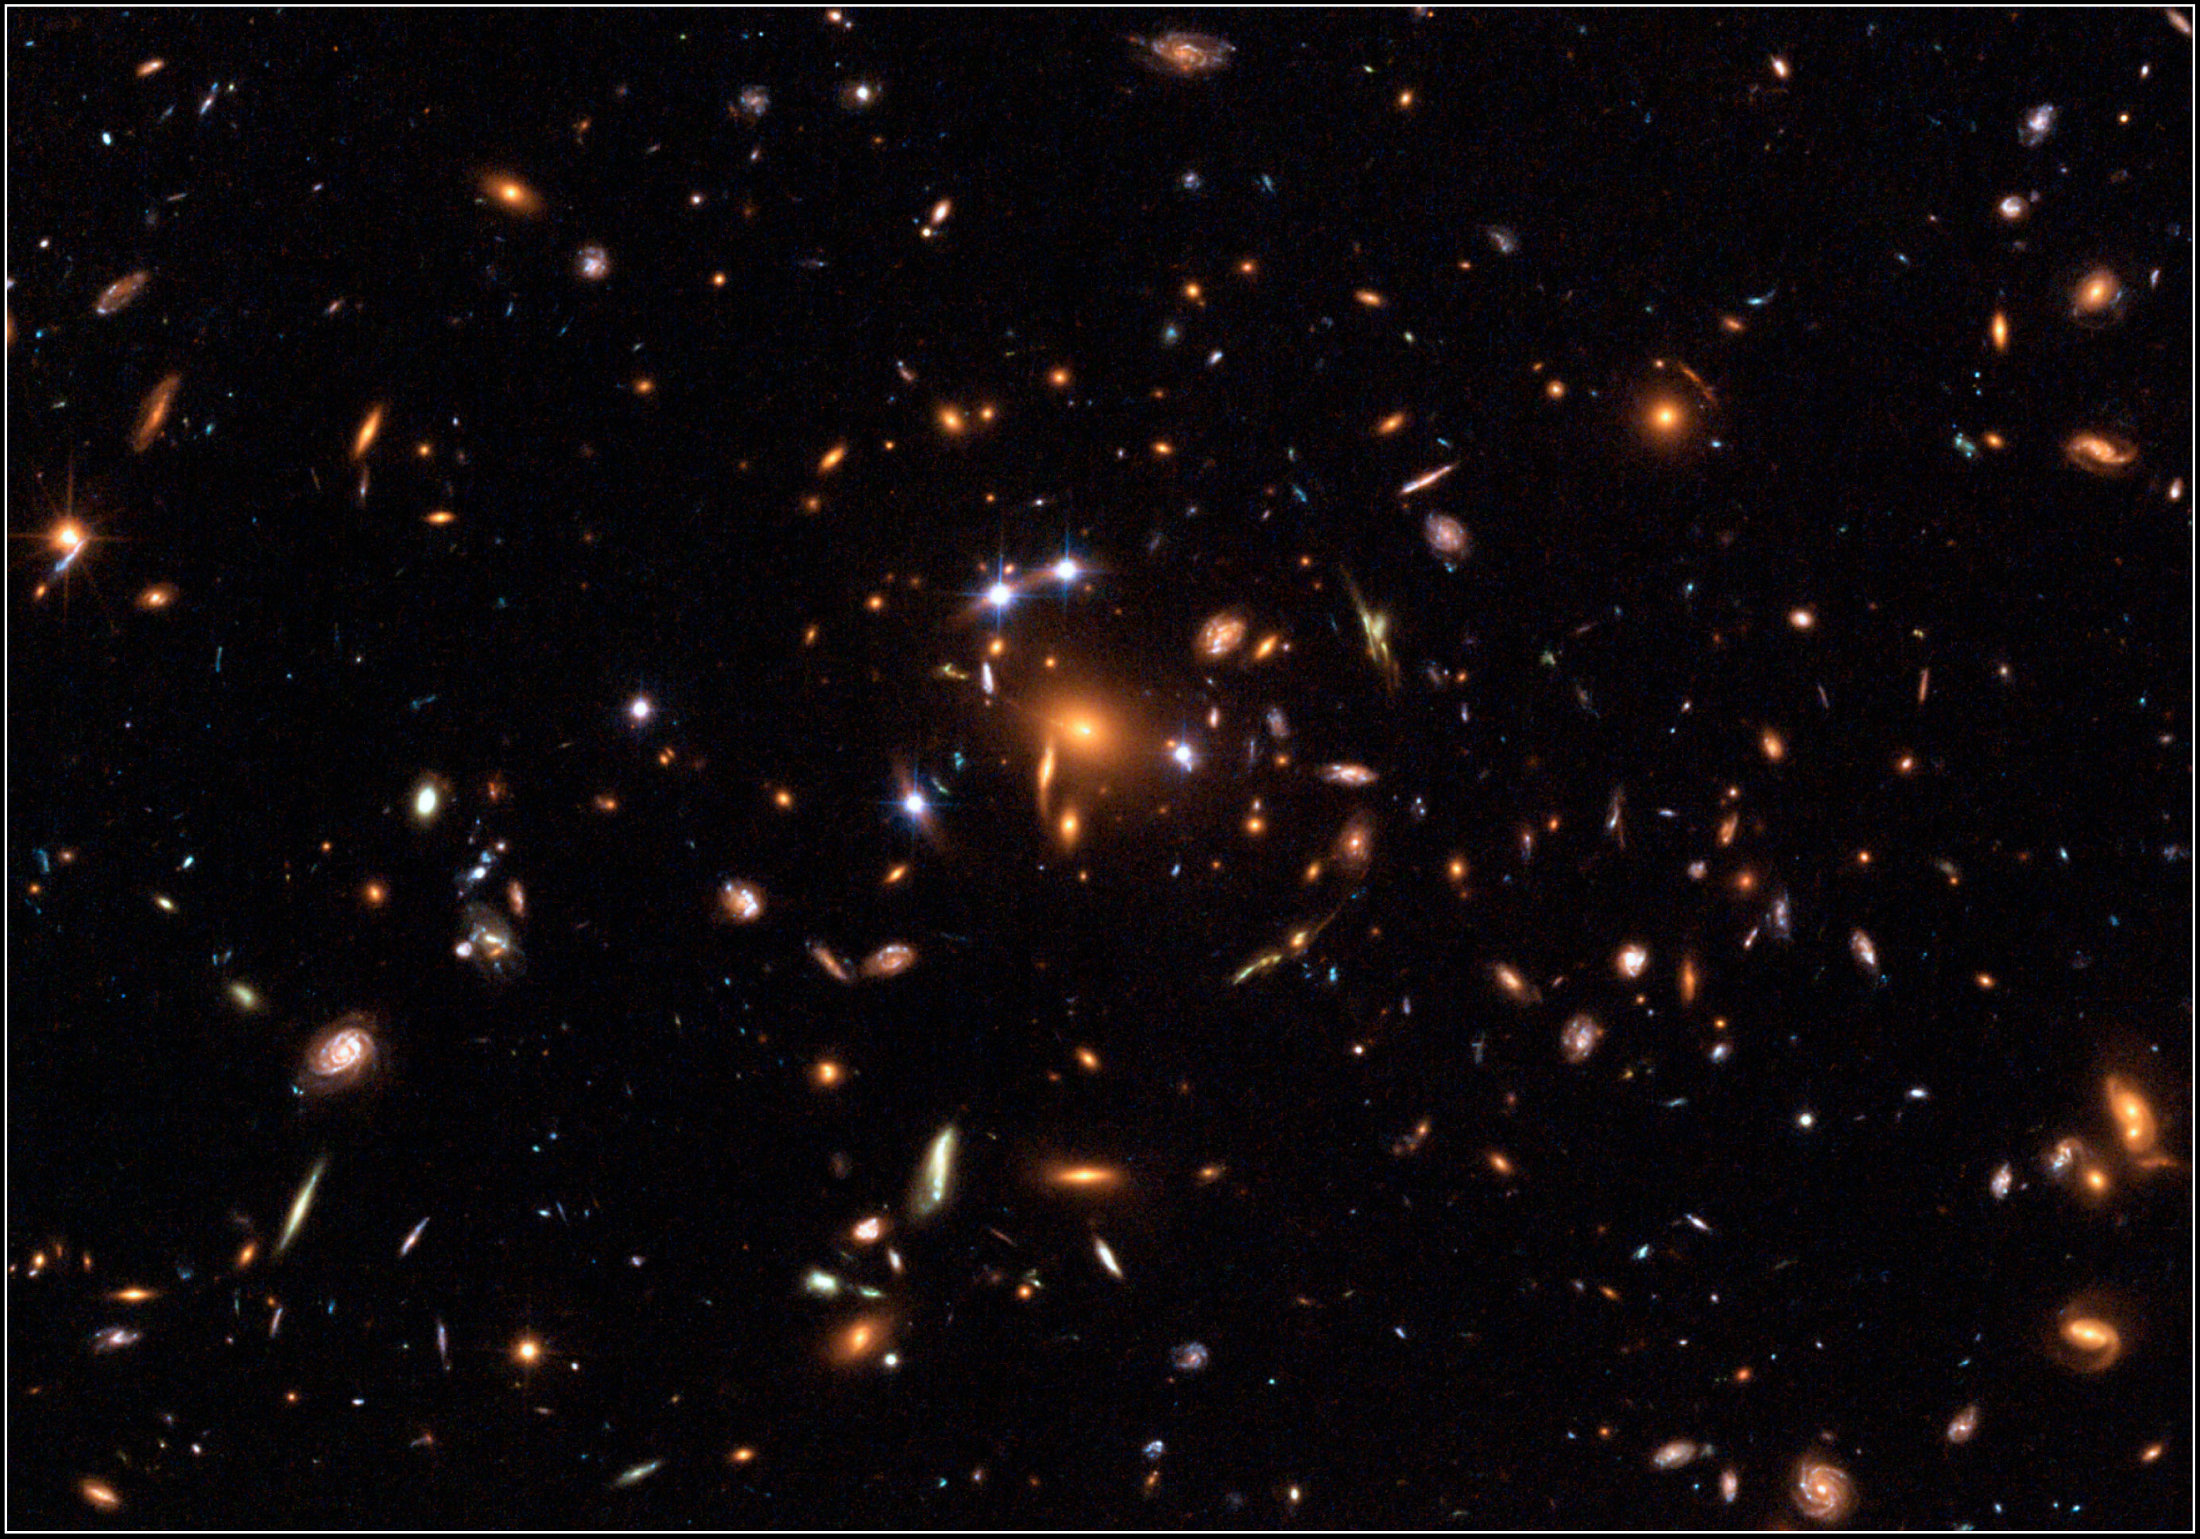 This HST image of the cluster SDSS J1004+4112